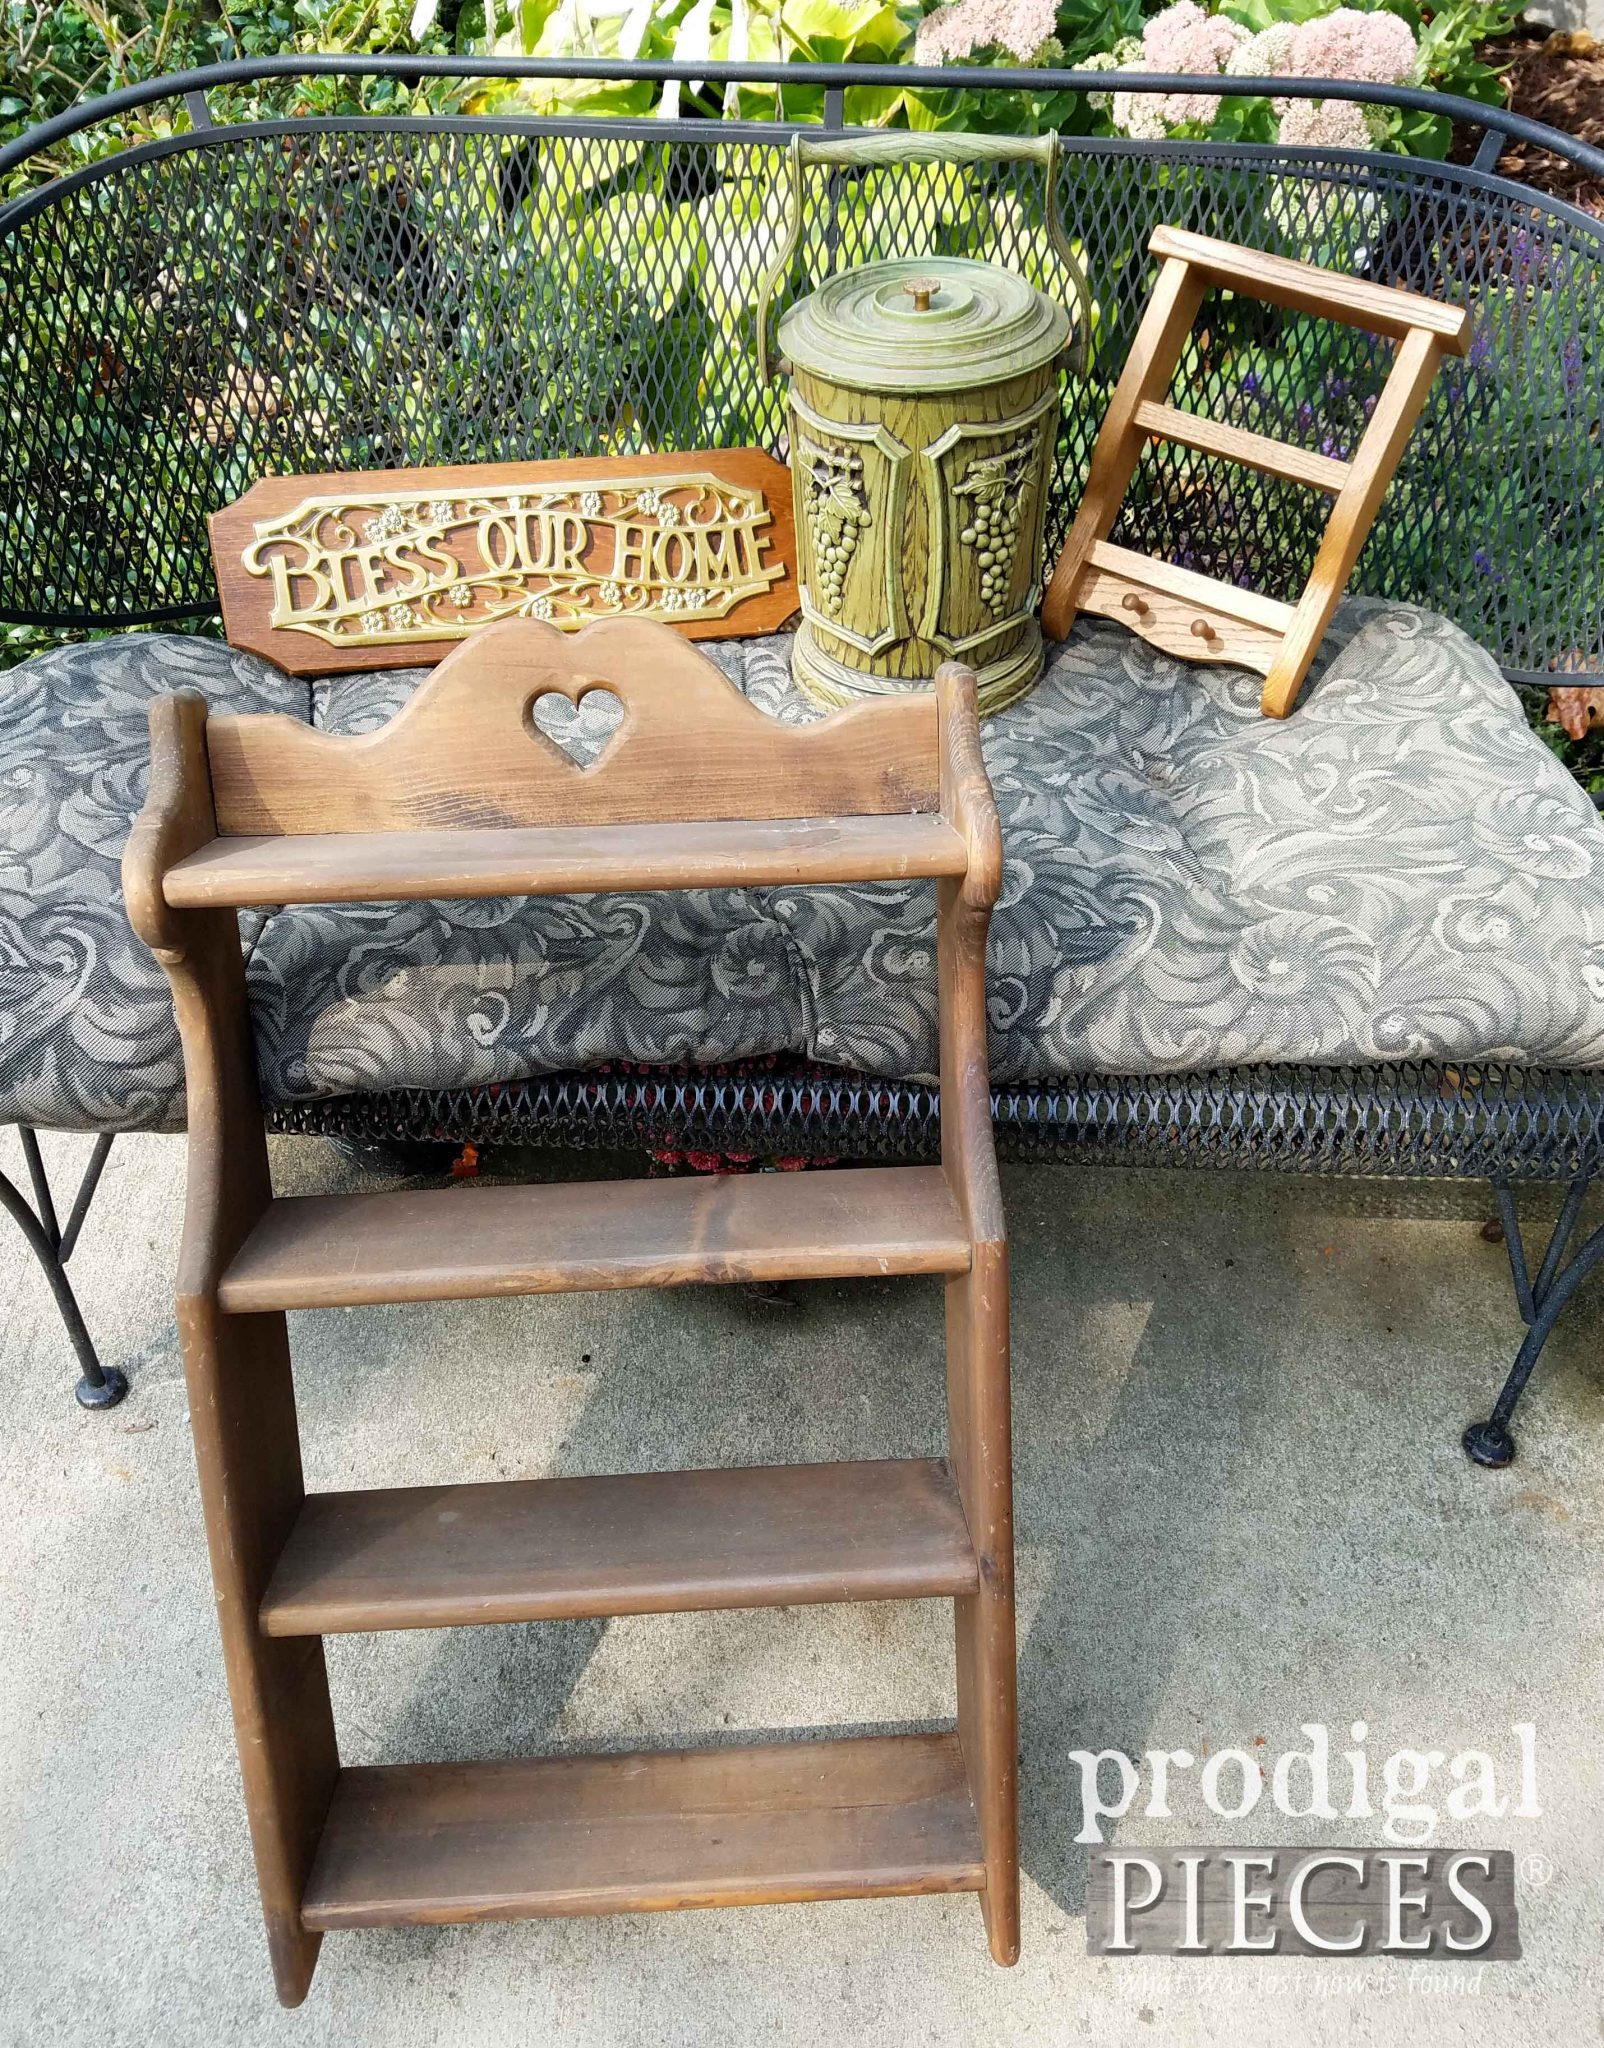 Thrifted Decor Pile for Farmhouse Makeover by Prodigal Pieces | prodigalpieces.com